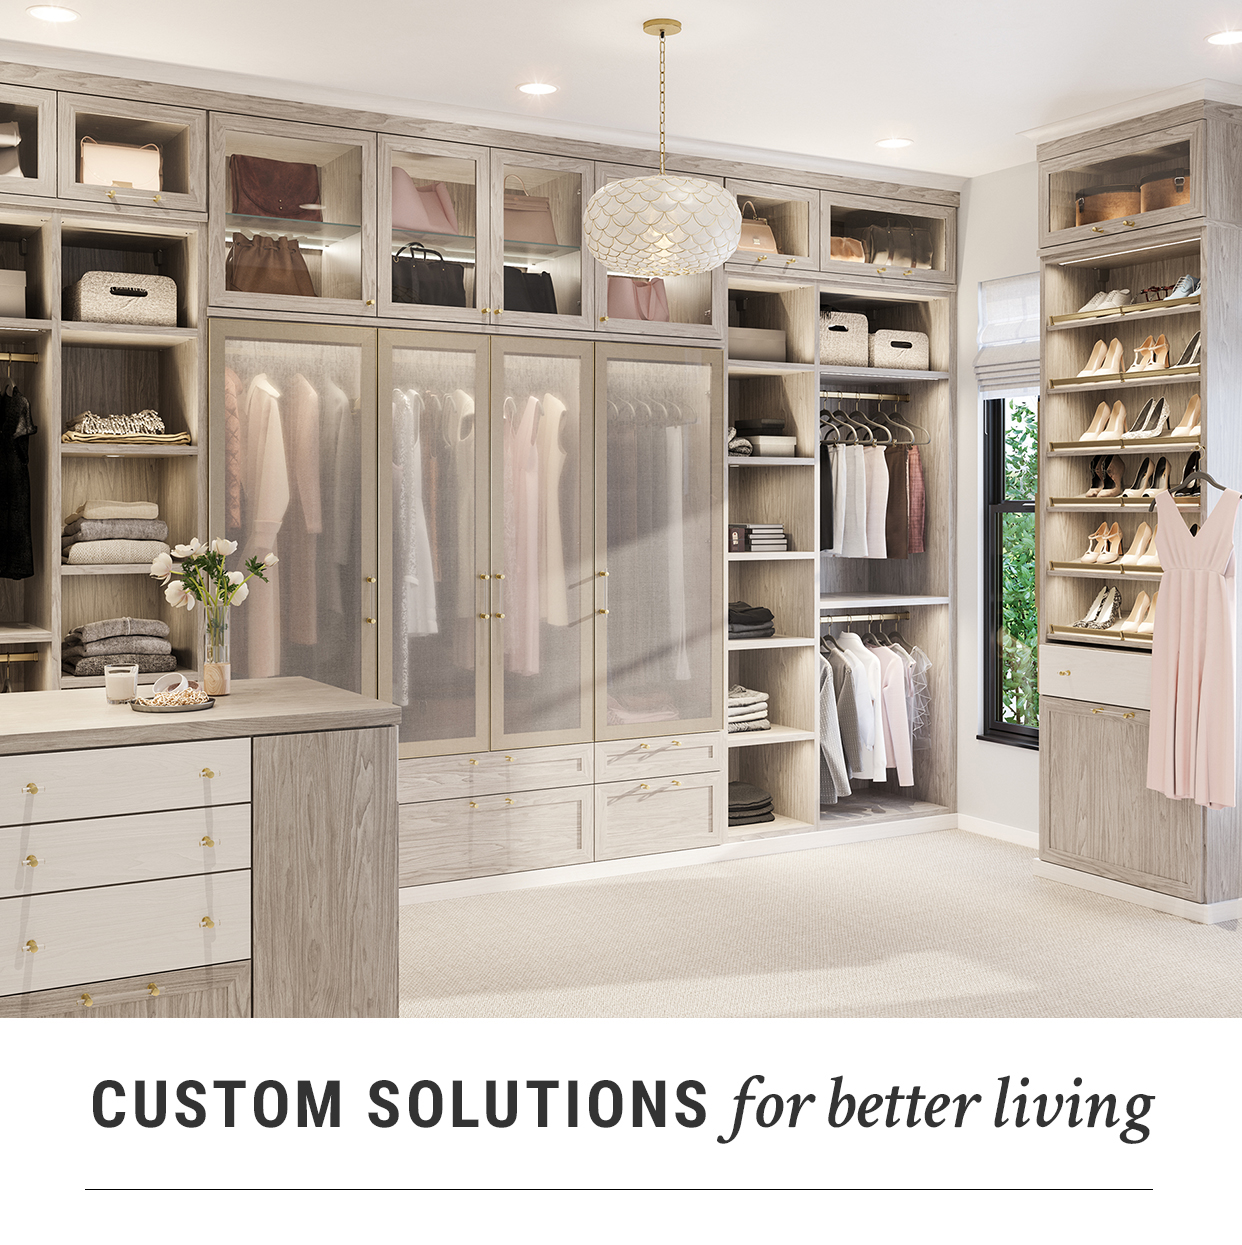 Custom Closet Ideas Designs: Custom Closet Systems, Home Storage & Closet Designs